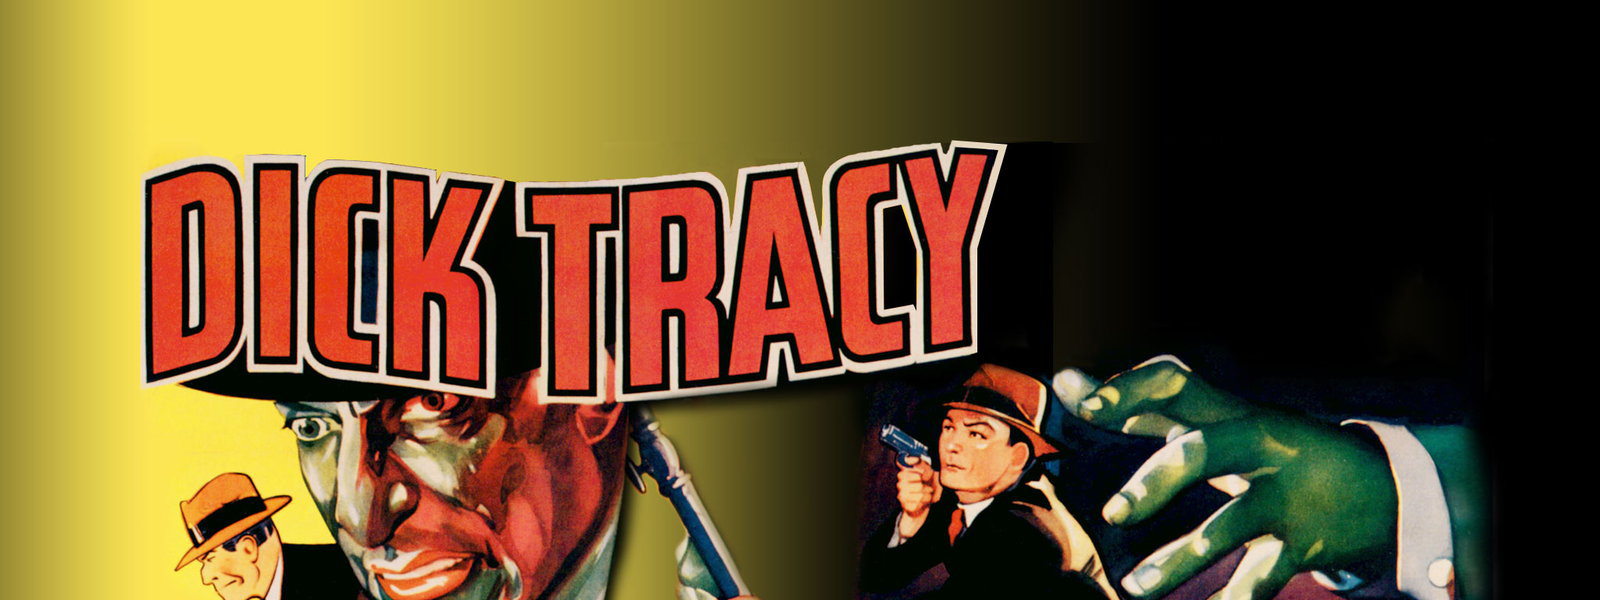 Dick Tracy [TV Series]